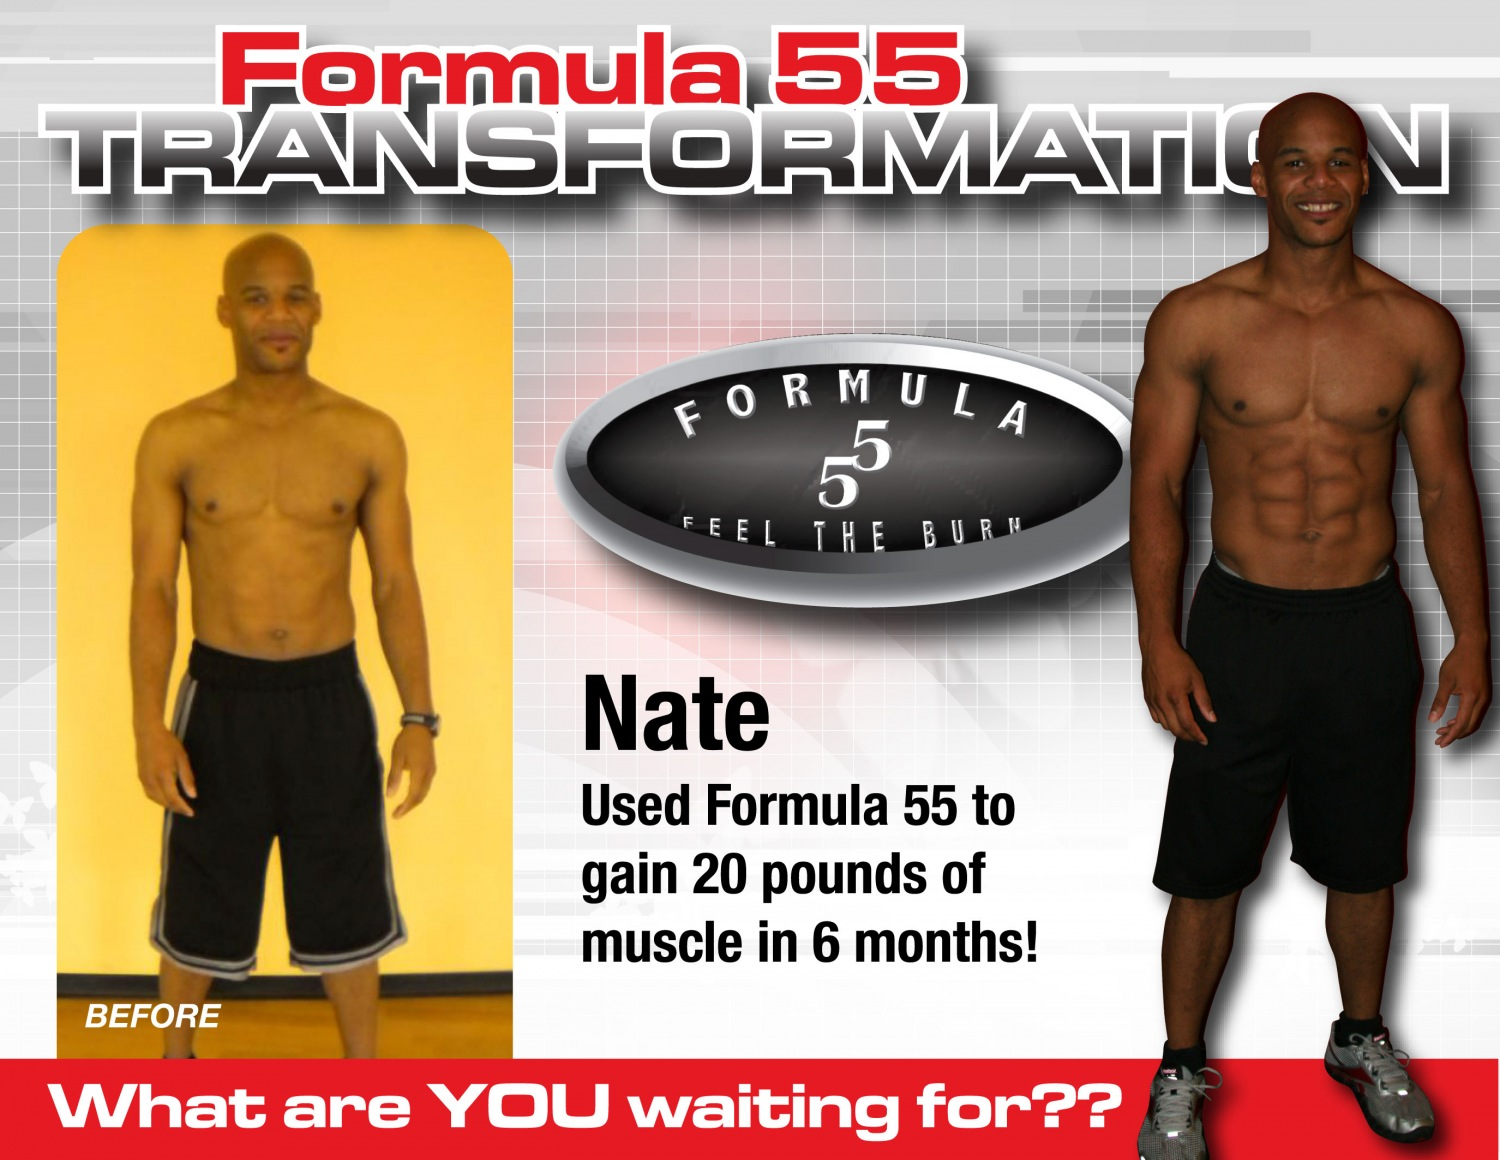 form-55-Transformation-Nate-1.jpg